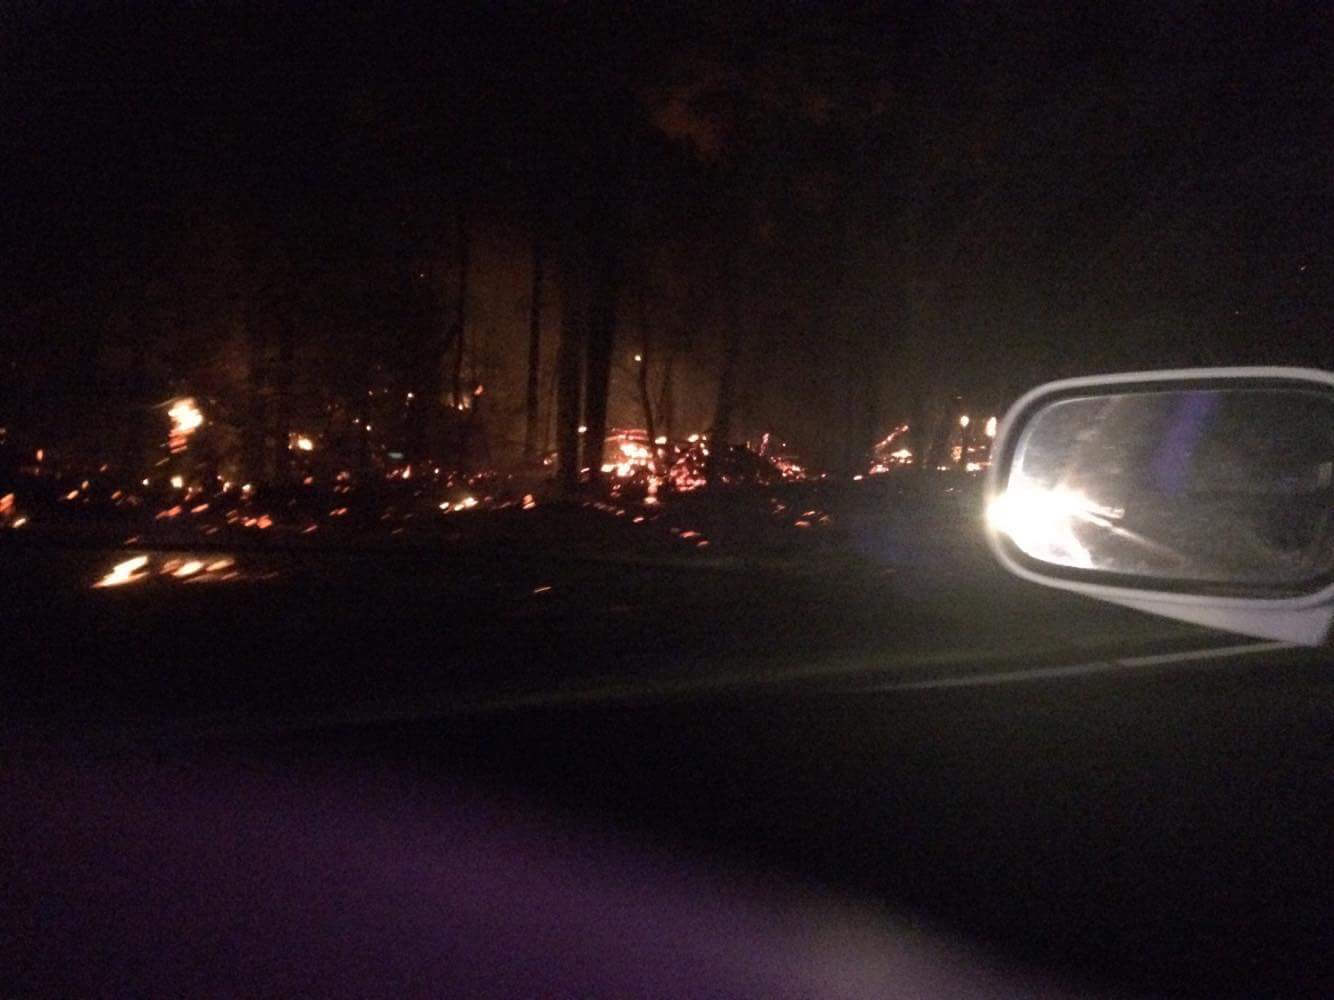 An out-of-control grassfire threatened property and closed the Gwydir Highway near Eatonsville.